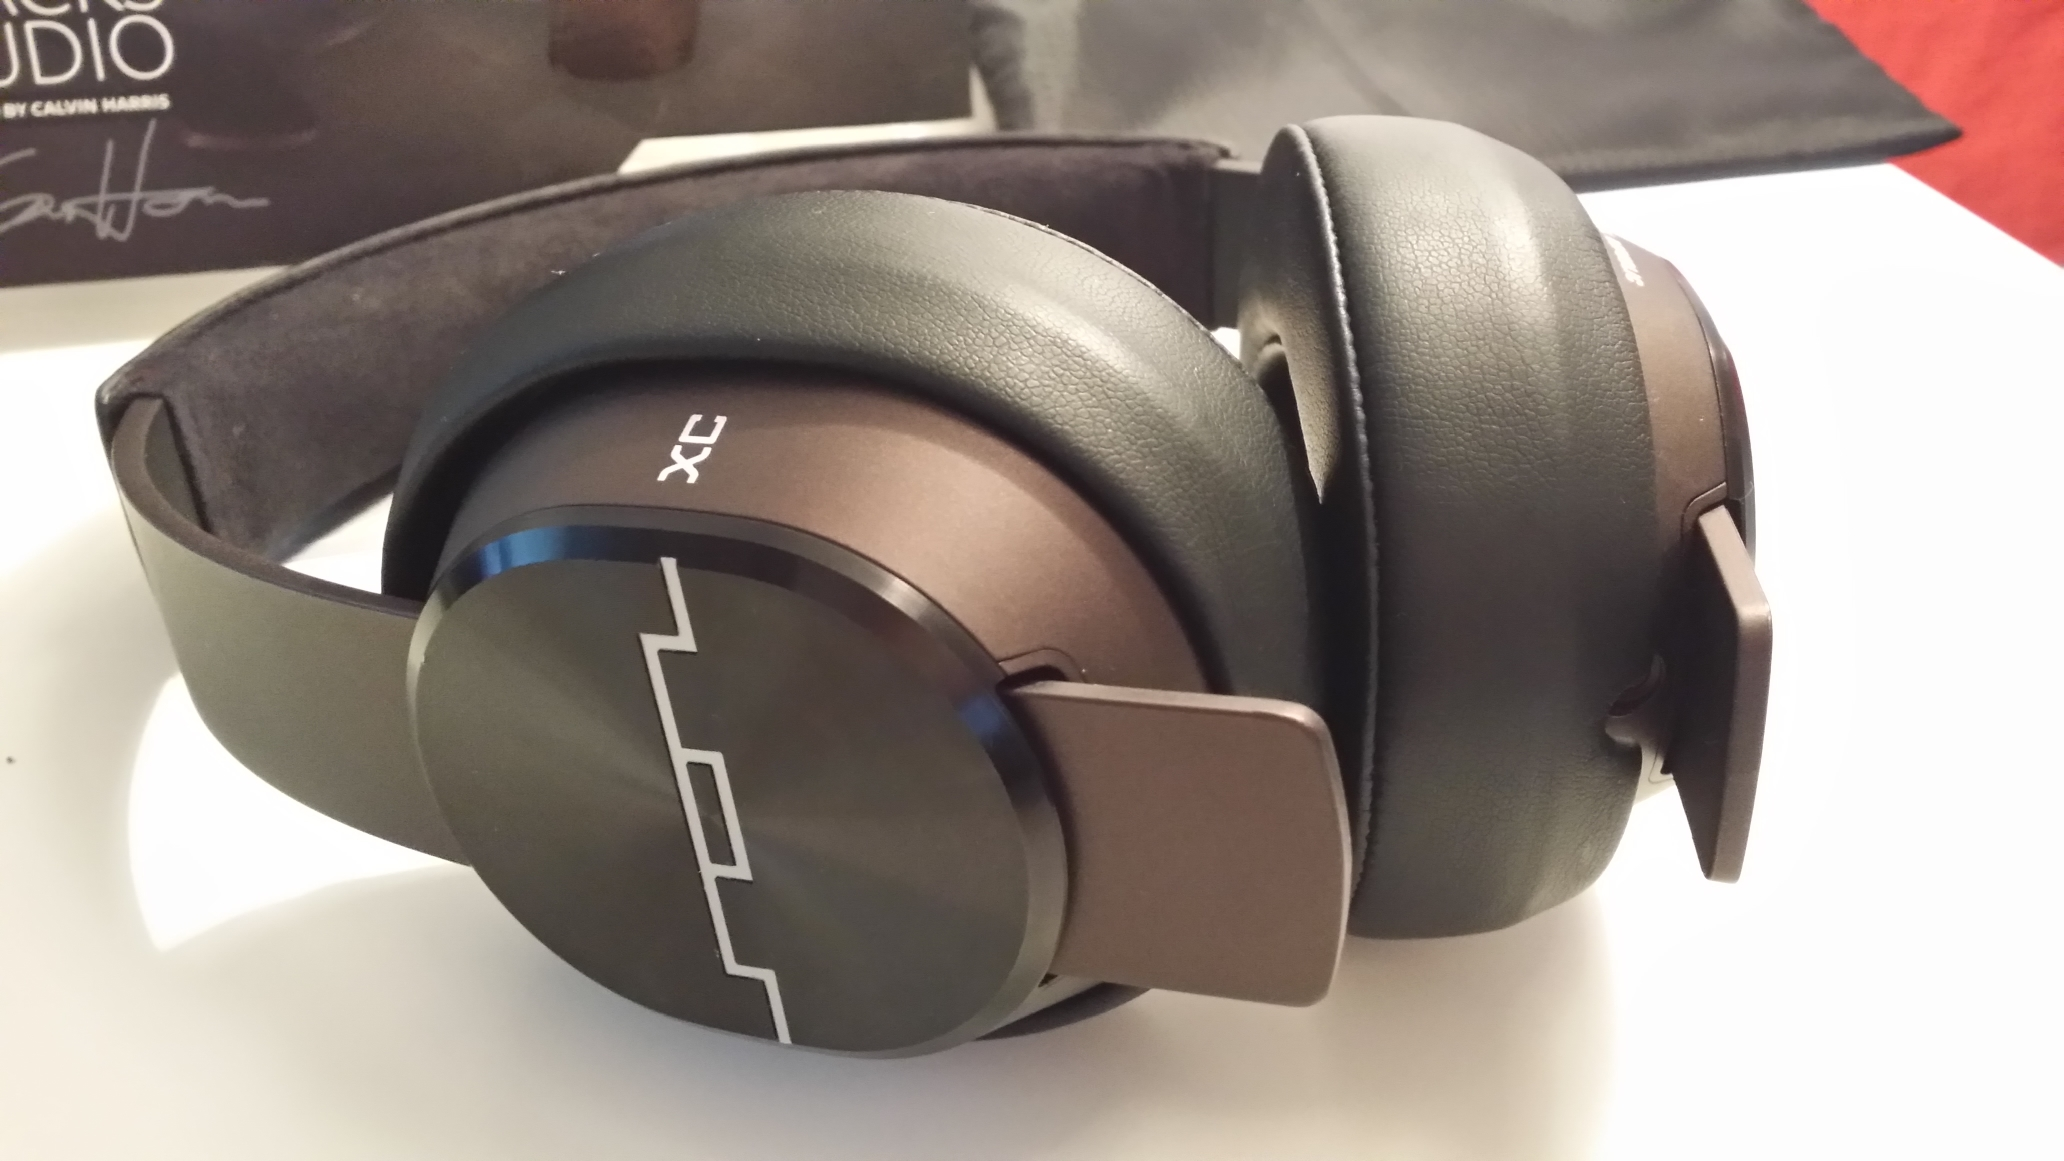 MasterTracksXCFeat Master Tracks XC review: Are Sol Republics $250 Calvin Harris tuned headphones worth the cash?